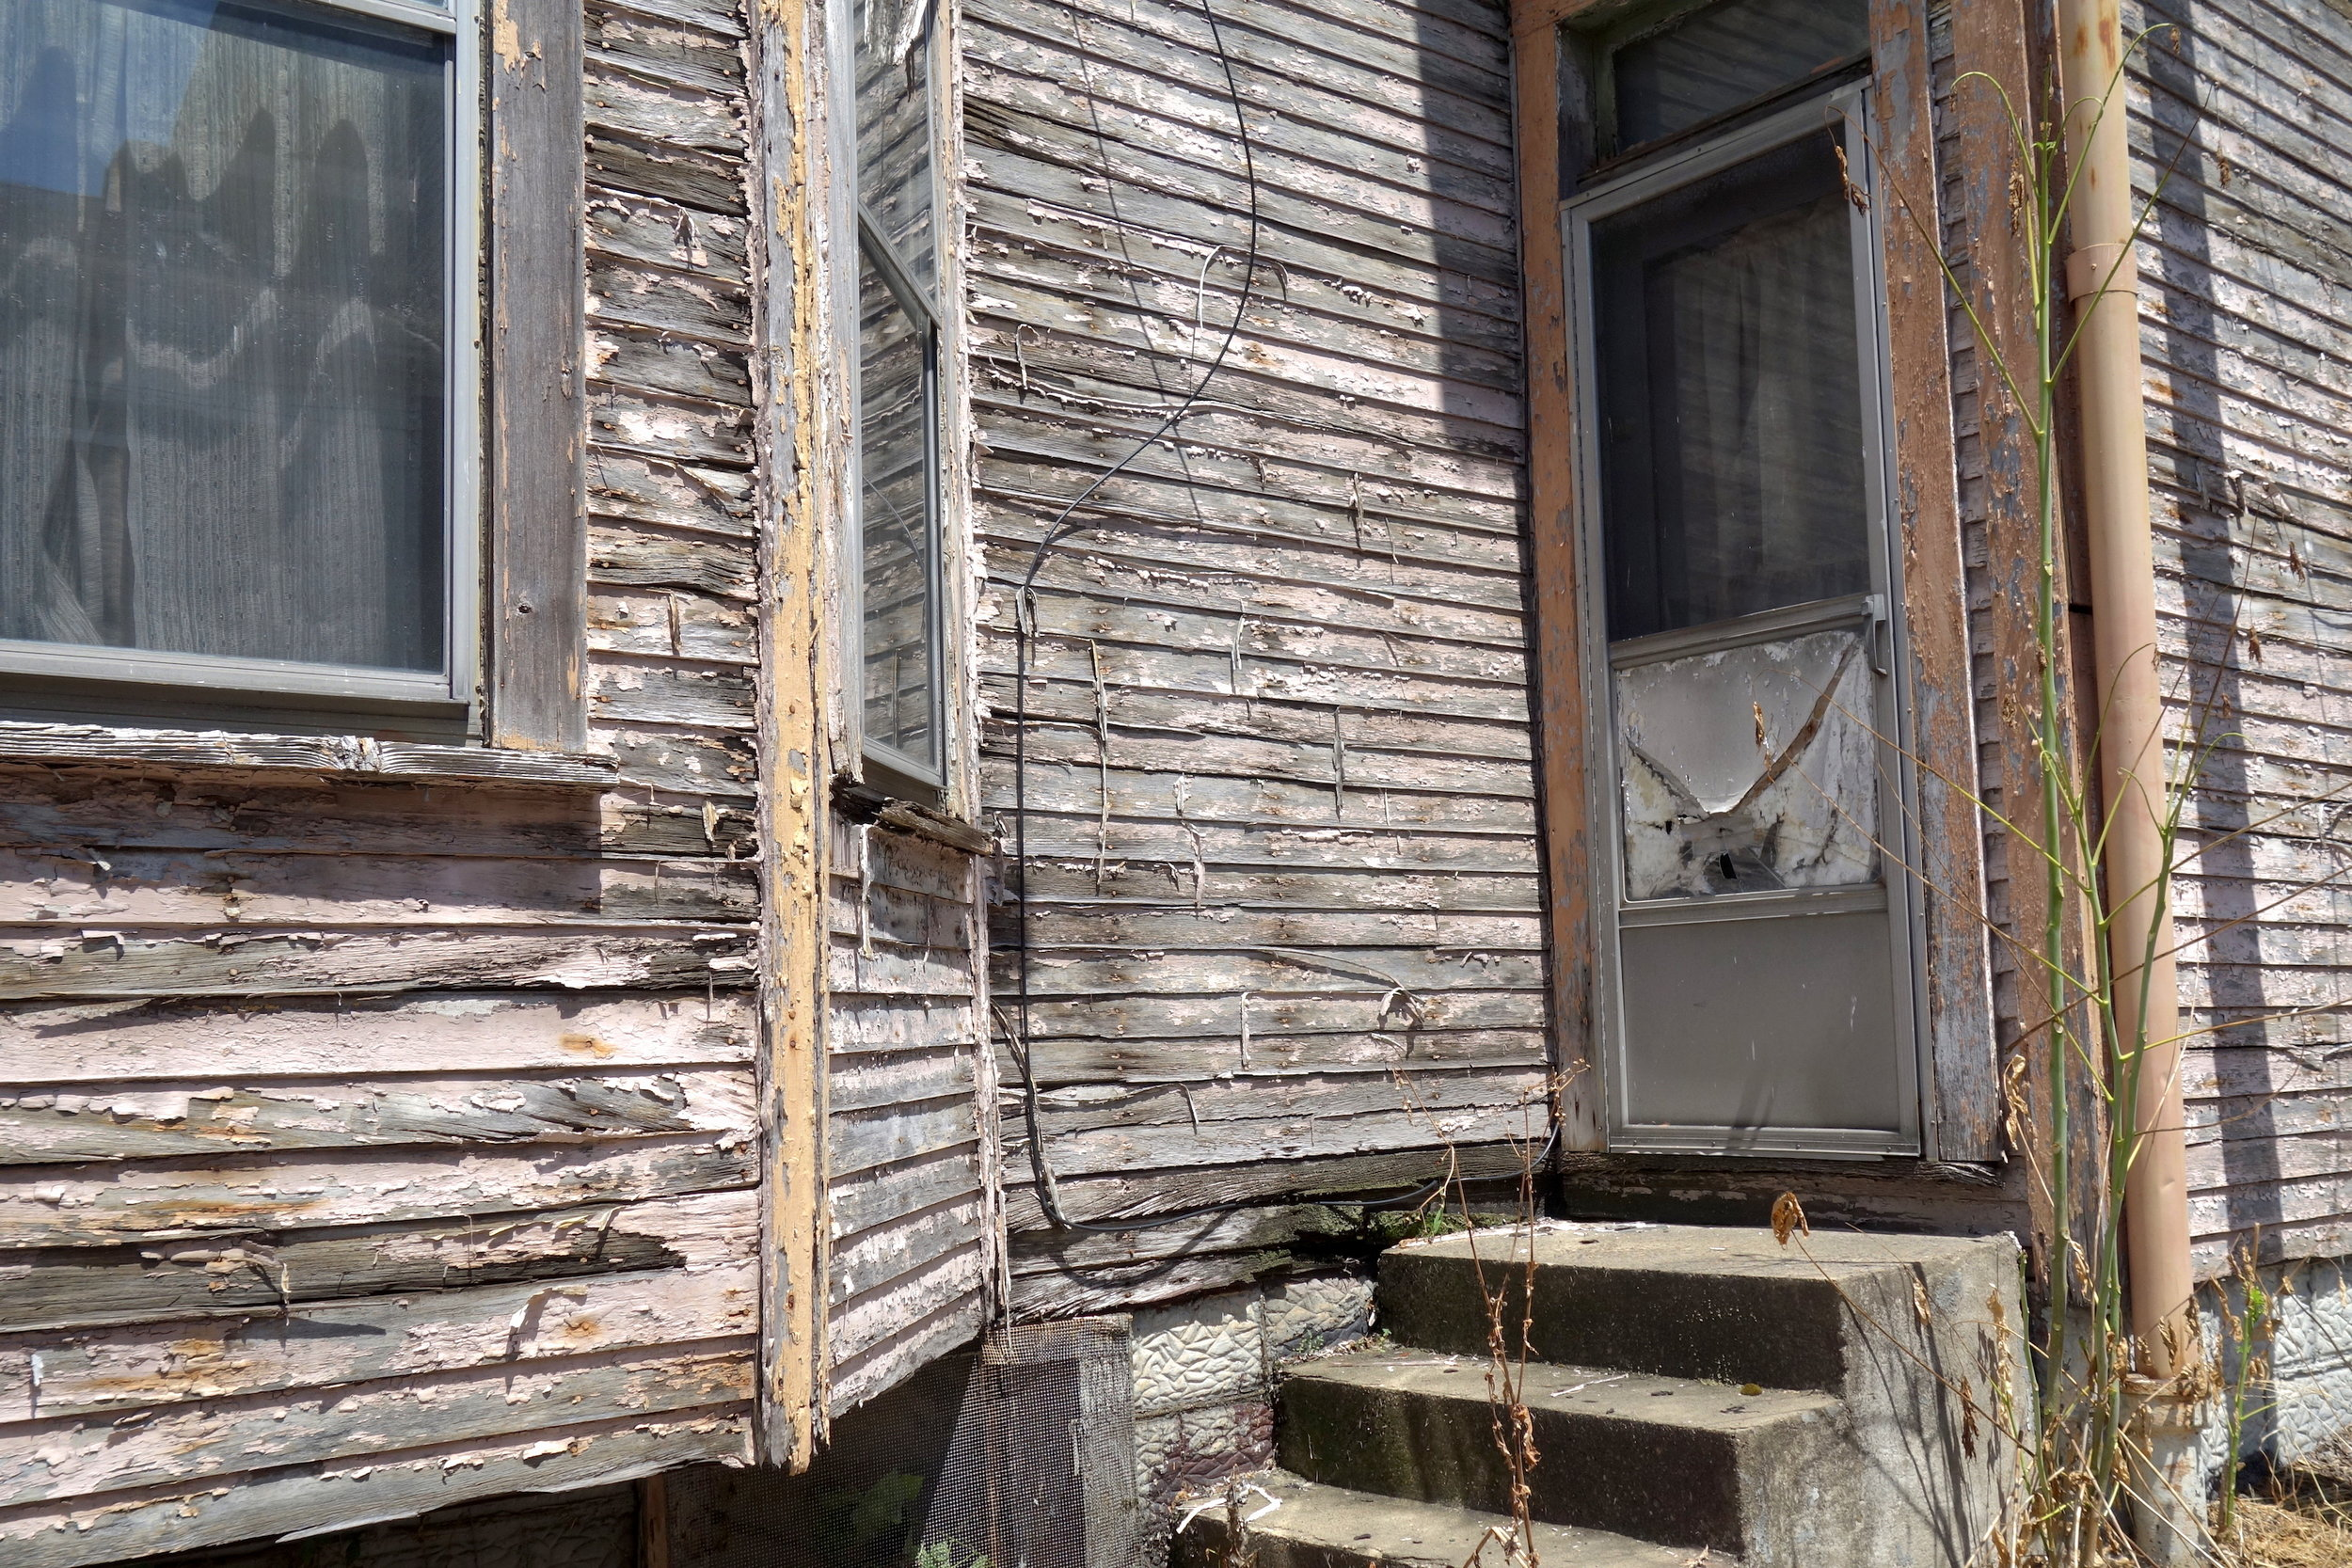 Figure 22. Side entrance to a weather-beaten house in South Wheeling, 2016. Photograph by Joseph Heathcott.